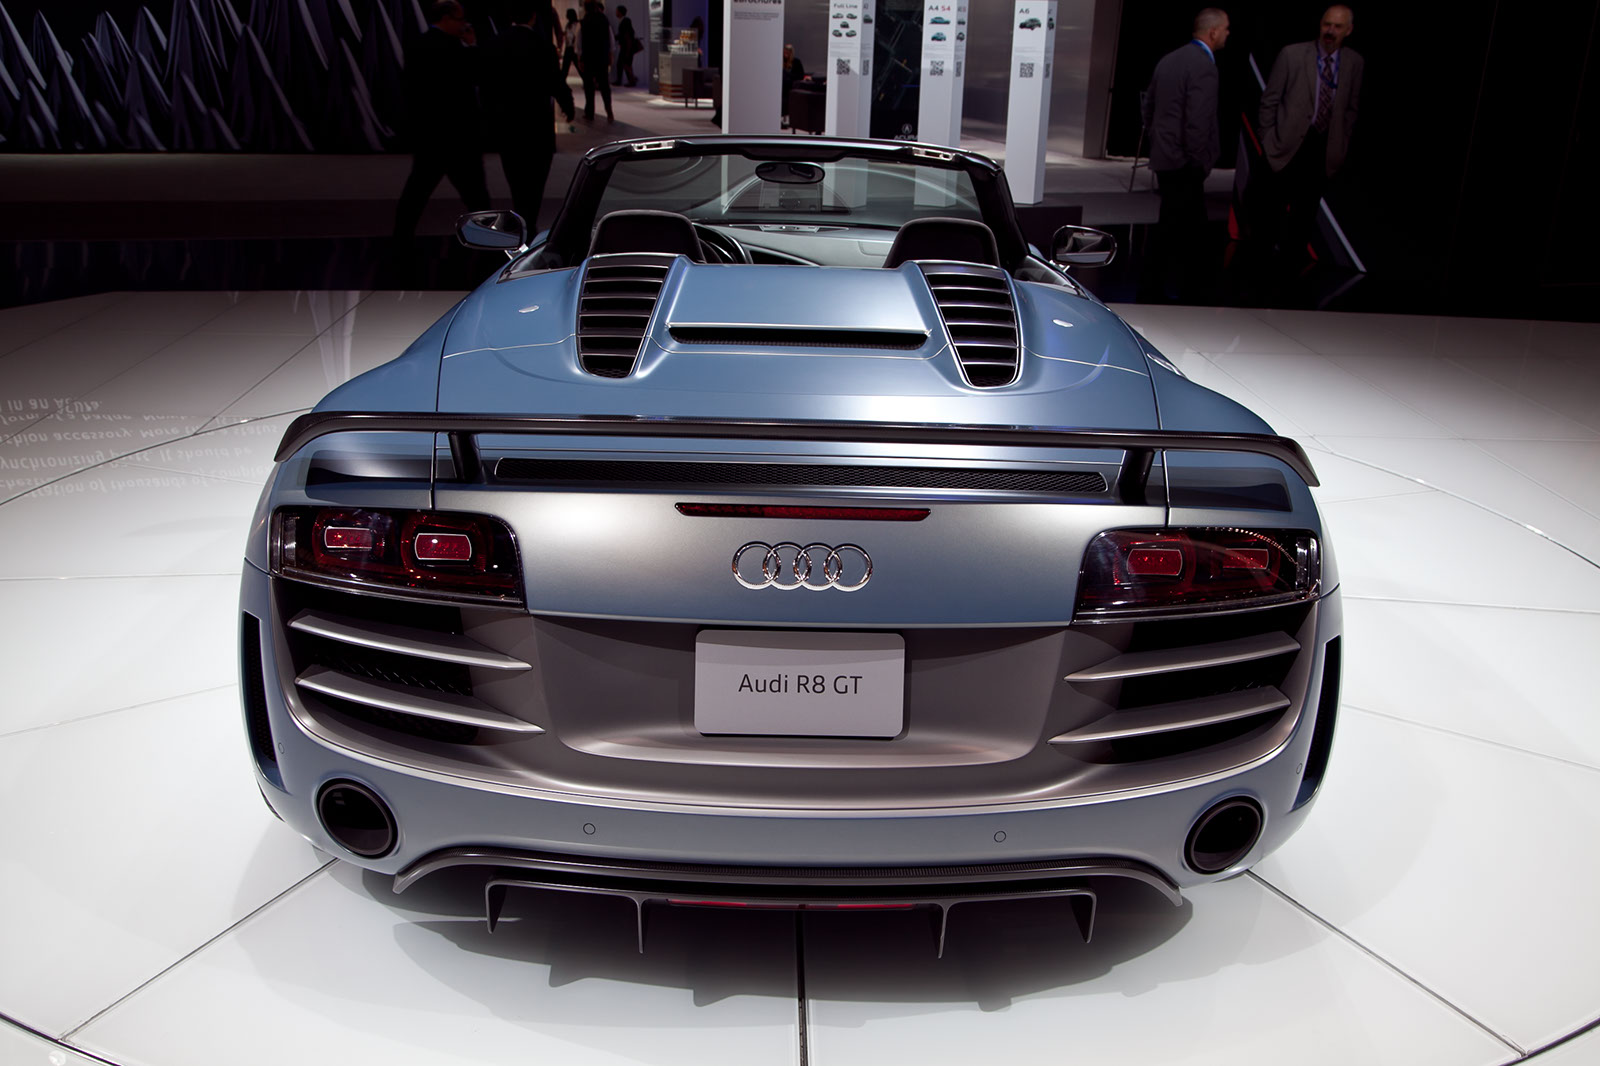 2012 audi r8 gt spyder review - top speed